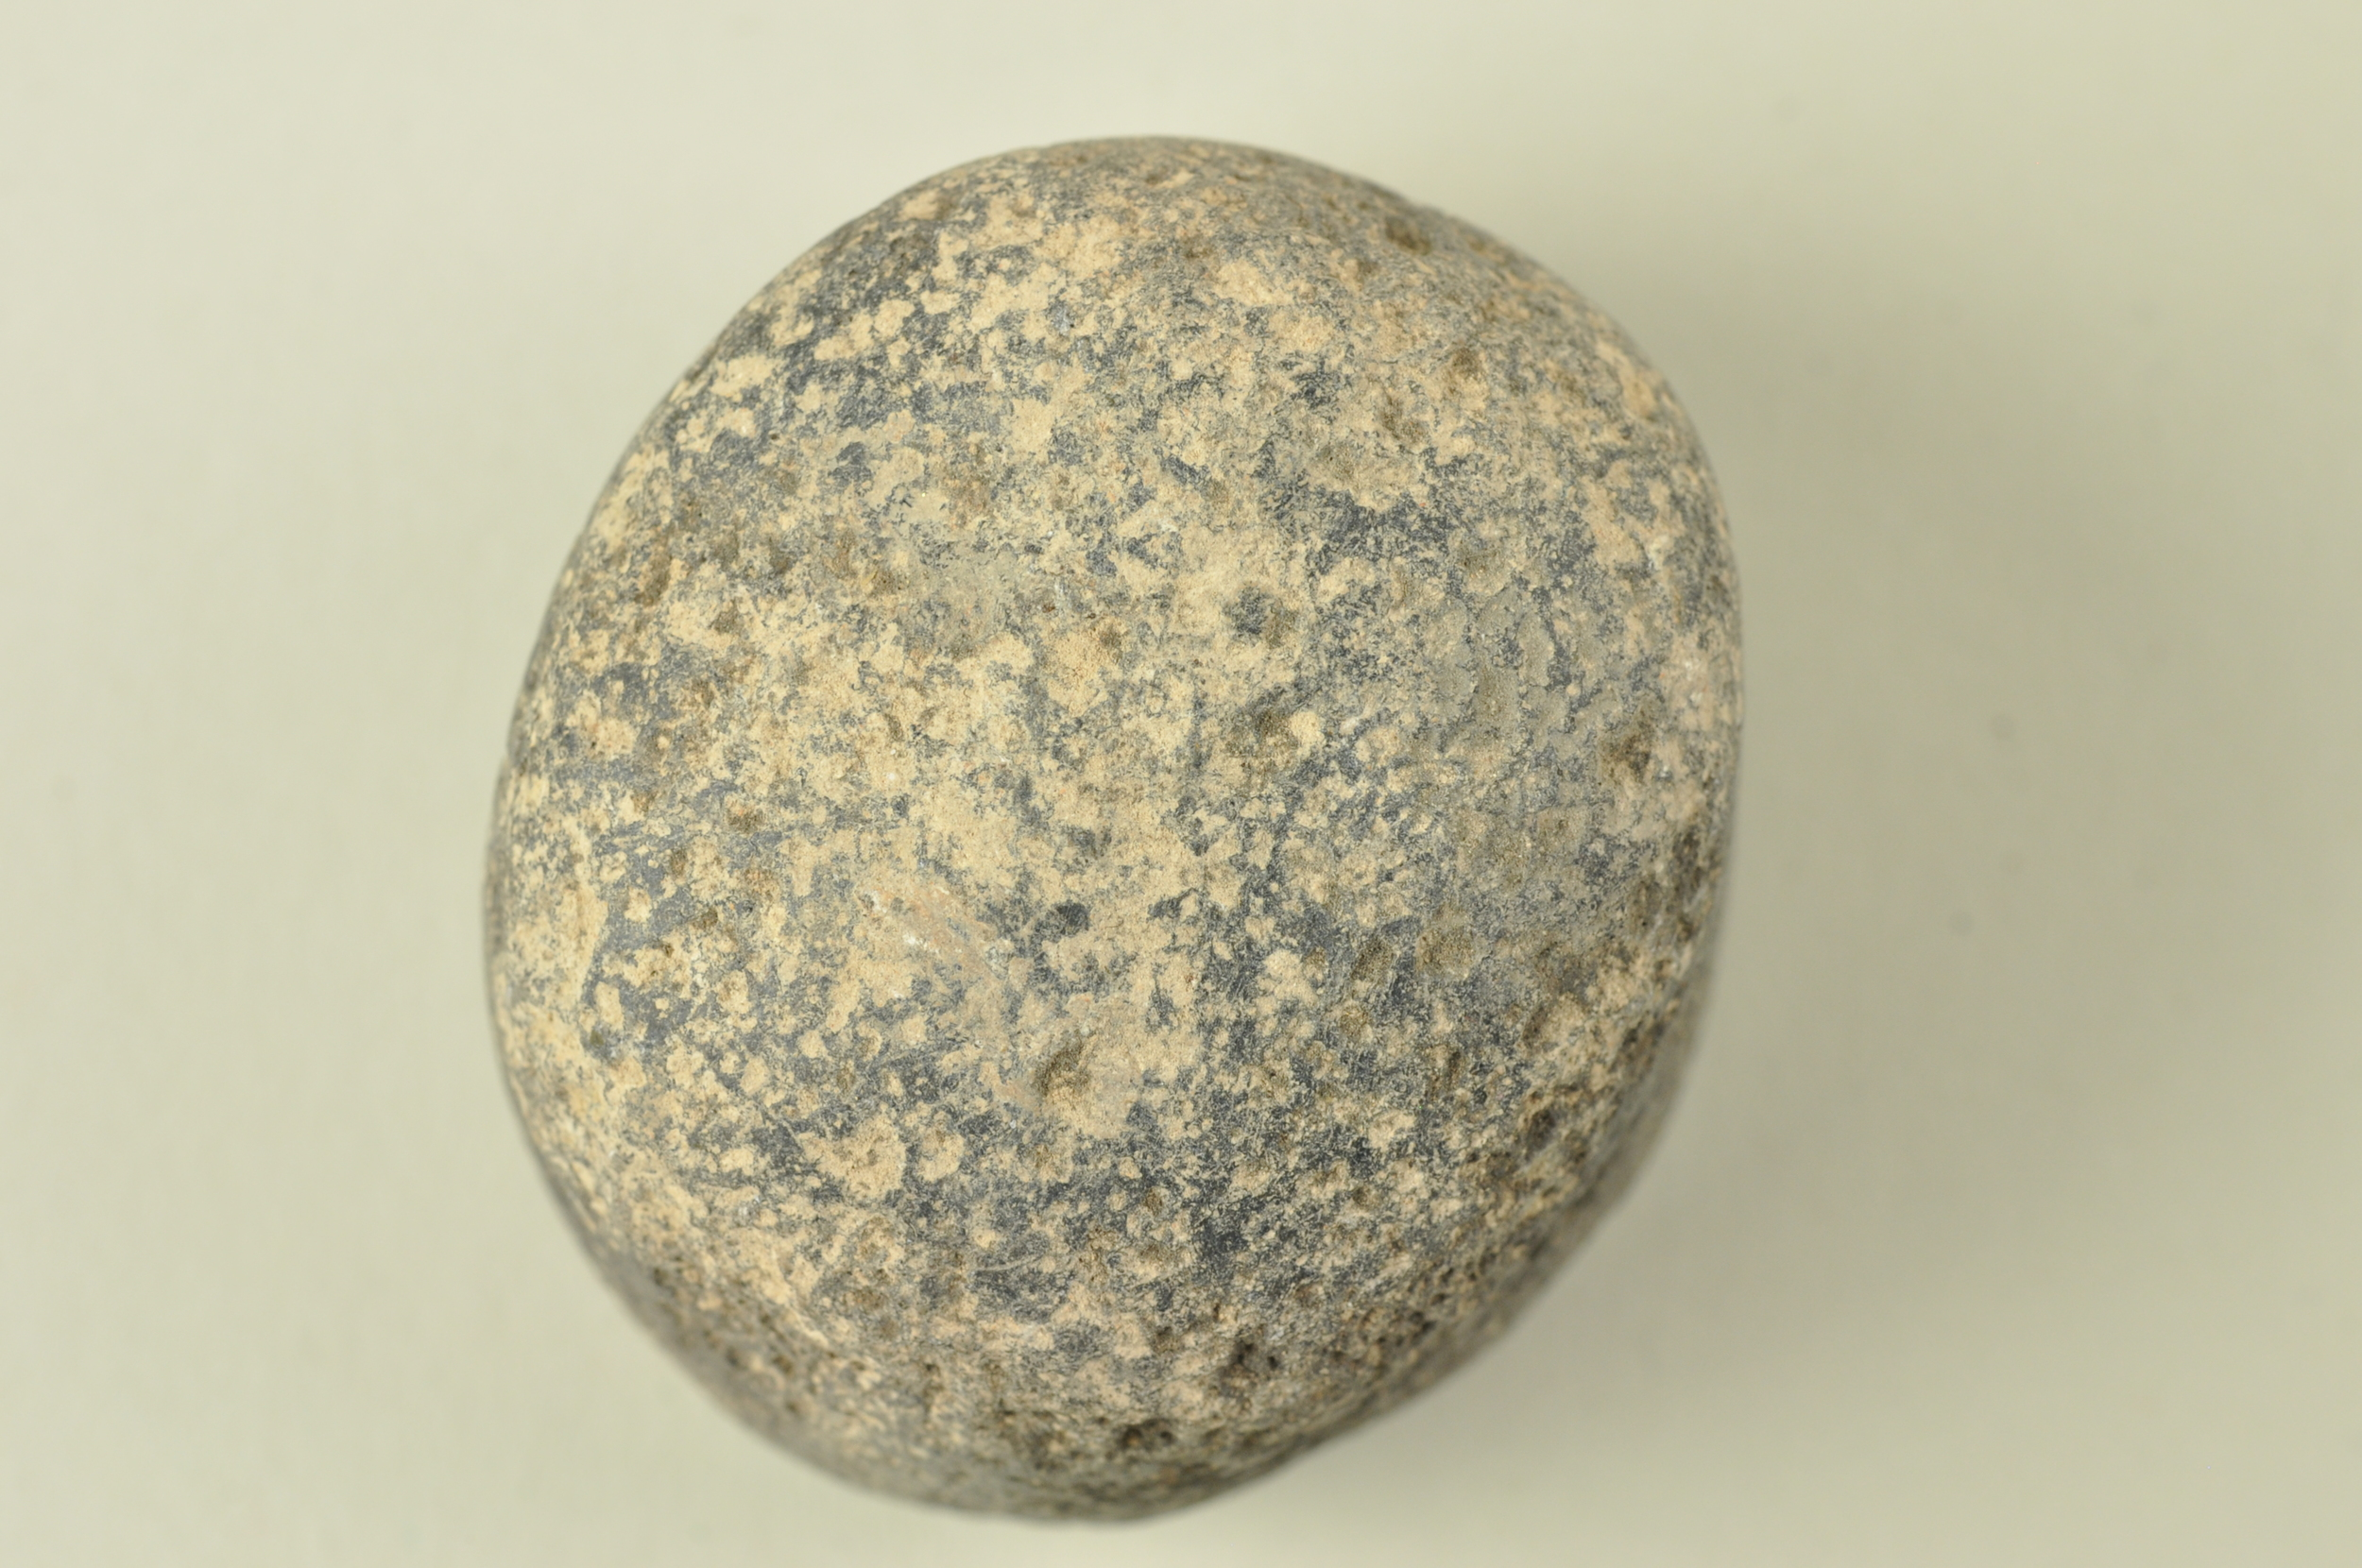 Basalt weight